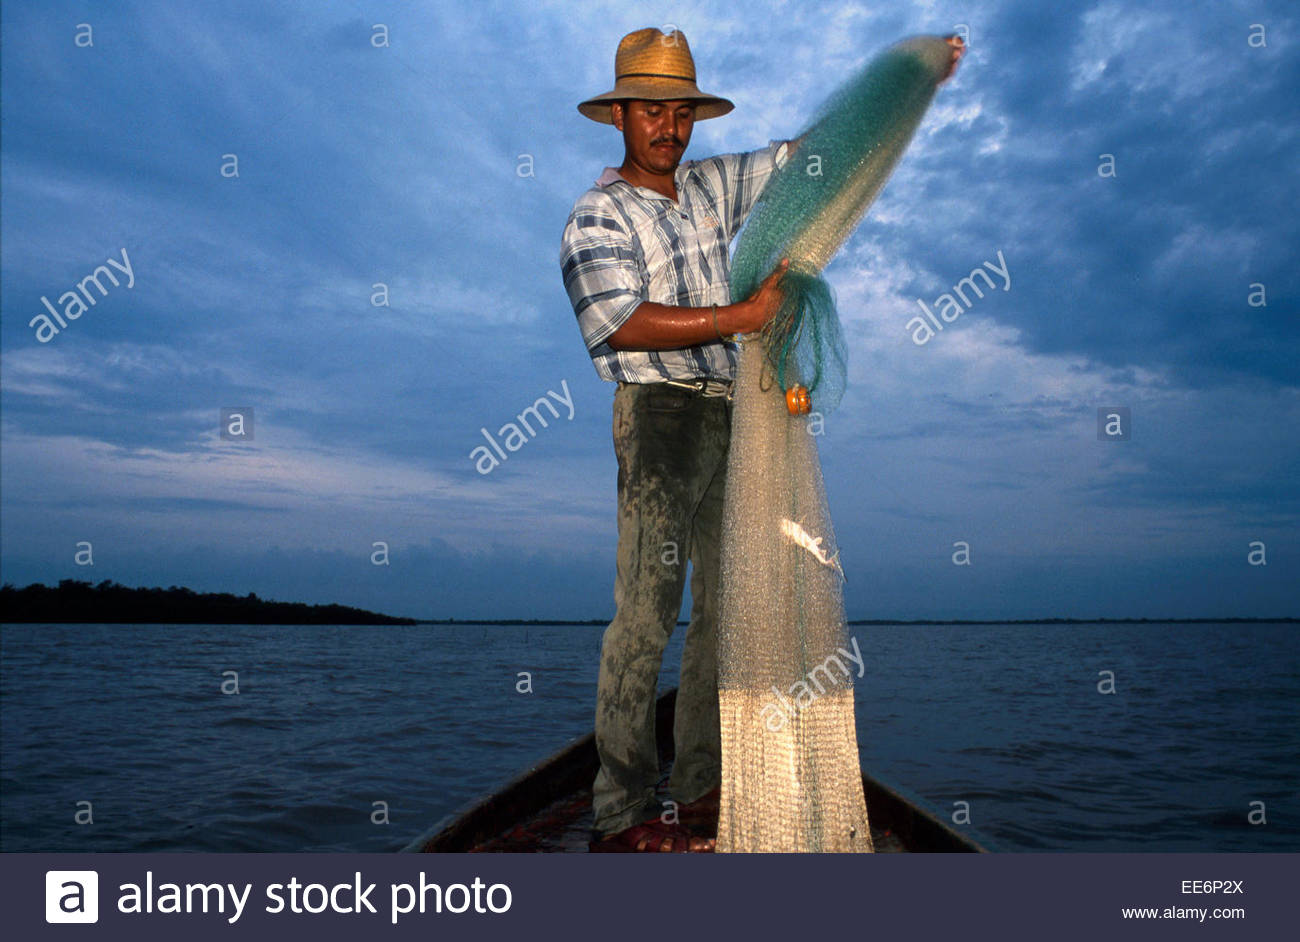 Mexcaltitan, Fisherman in the lagoon - Stock Image